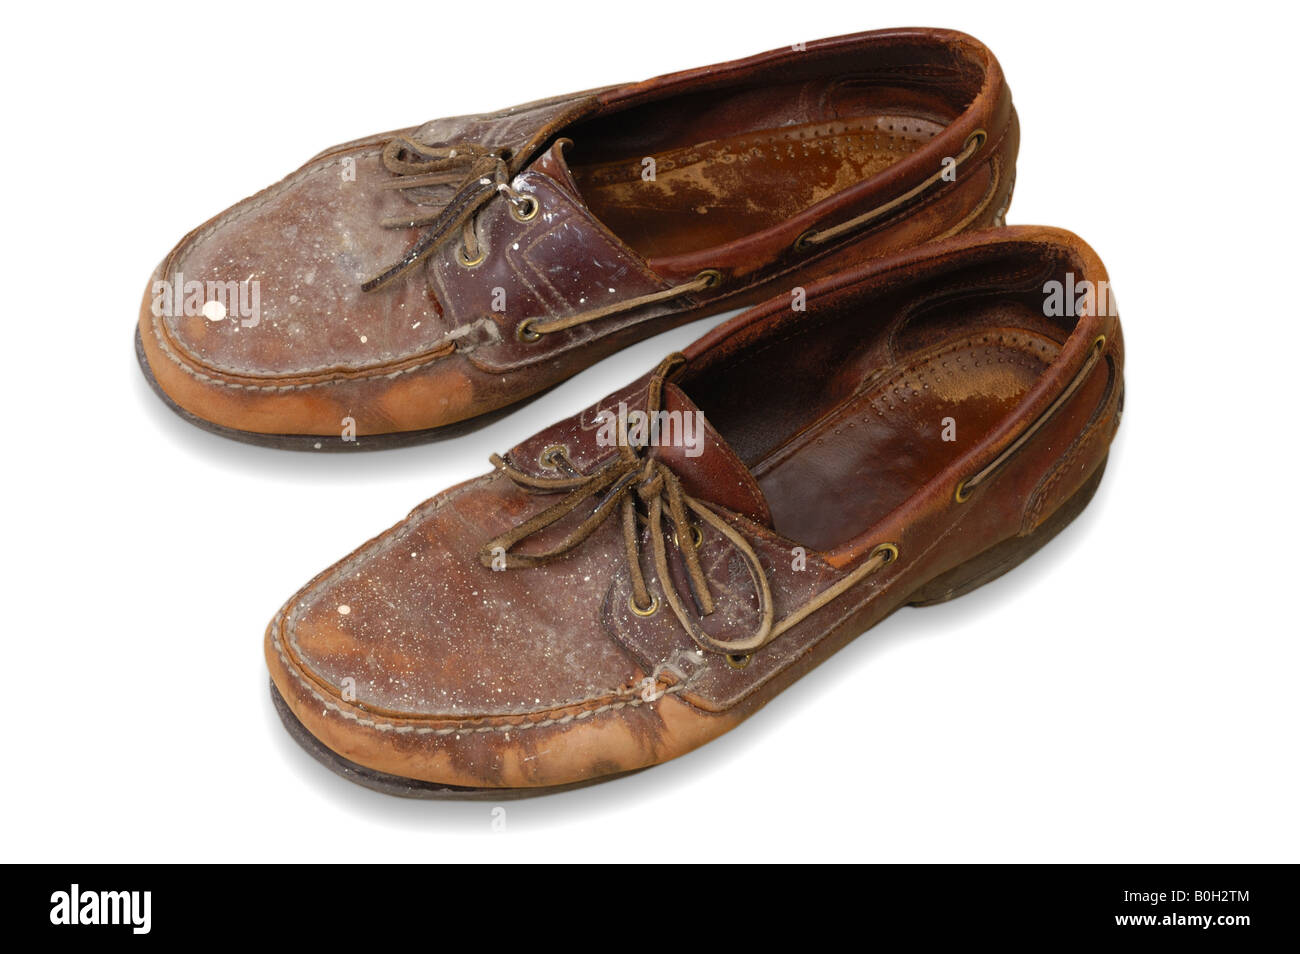 A pair of painter's shoes, worn out and spattered with paint - Stock Image